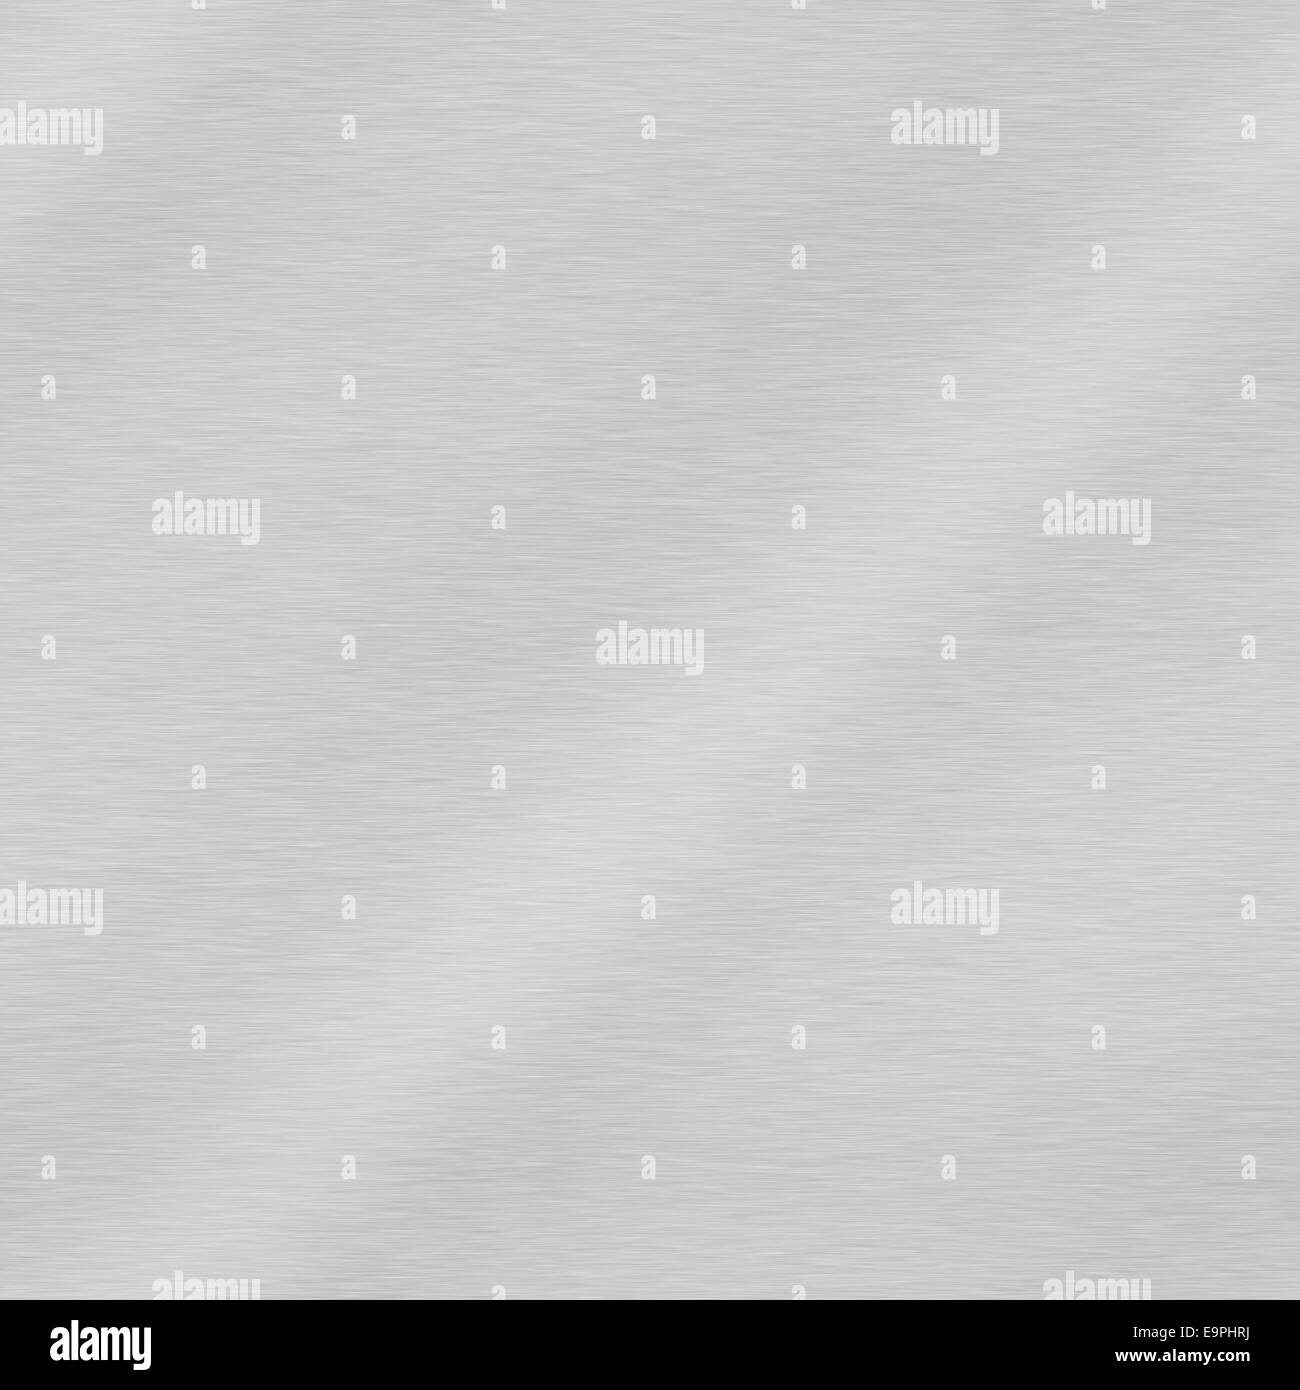 Metal surface abstract background illustration. - Stock Image